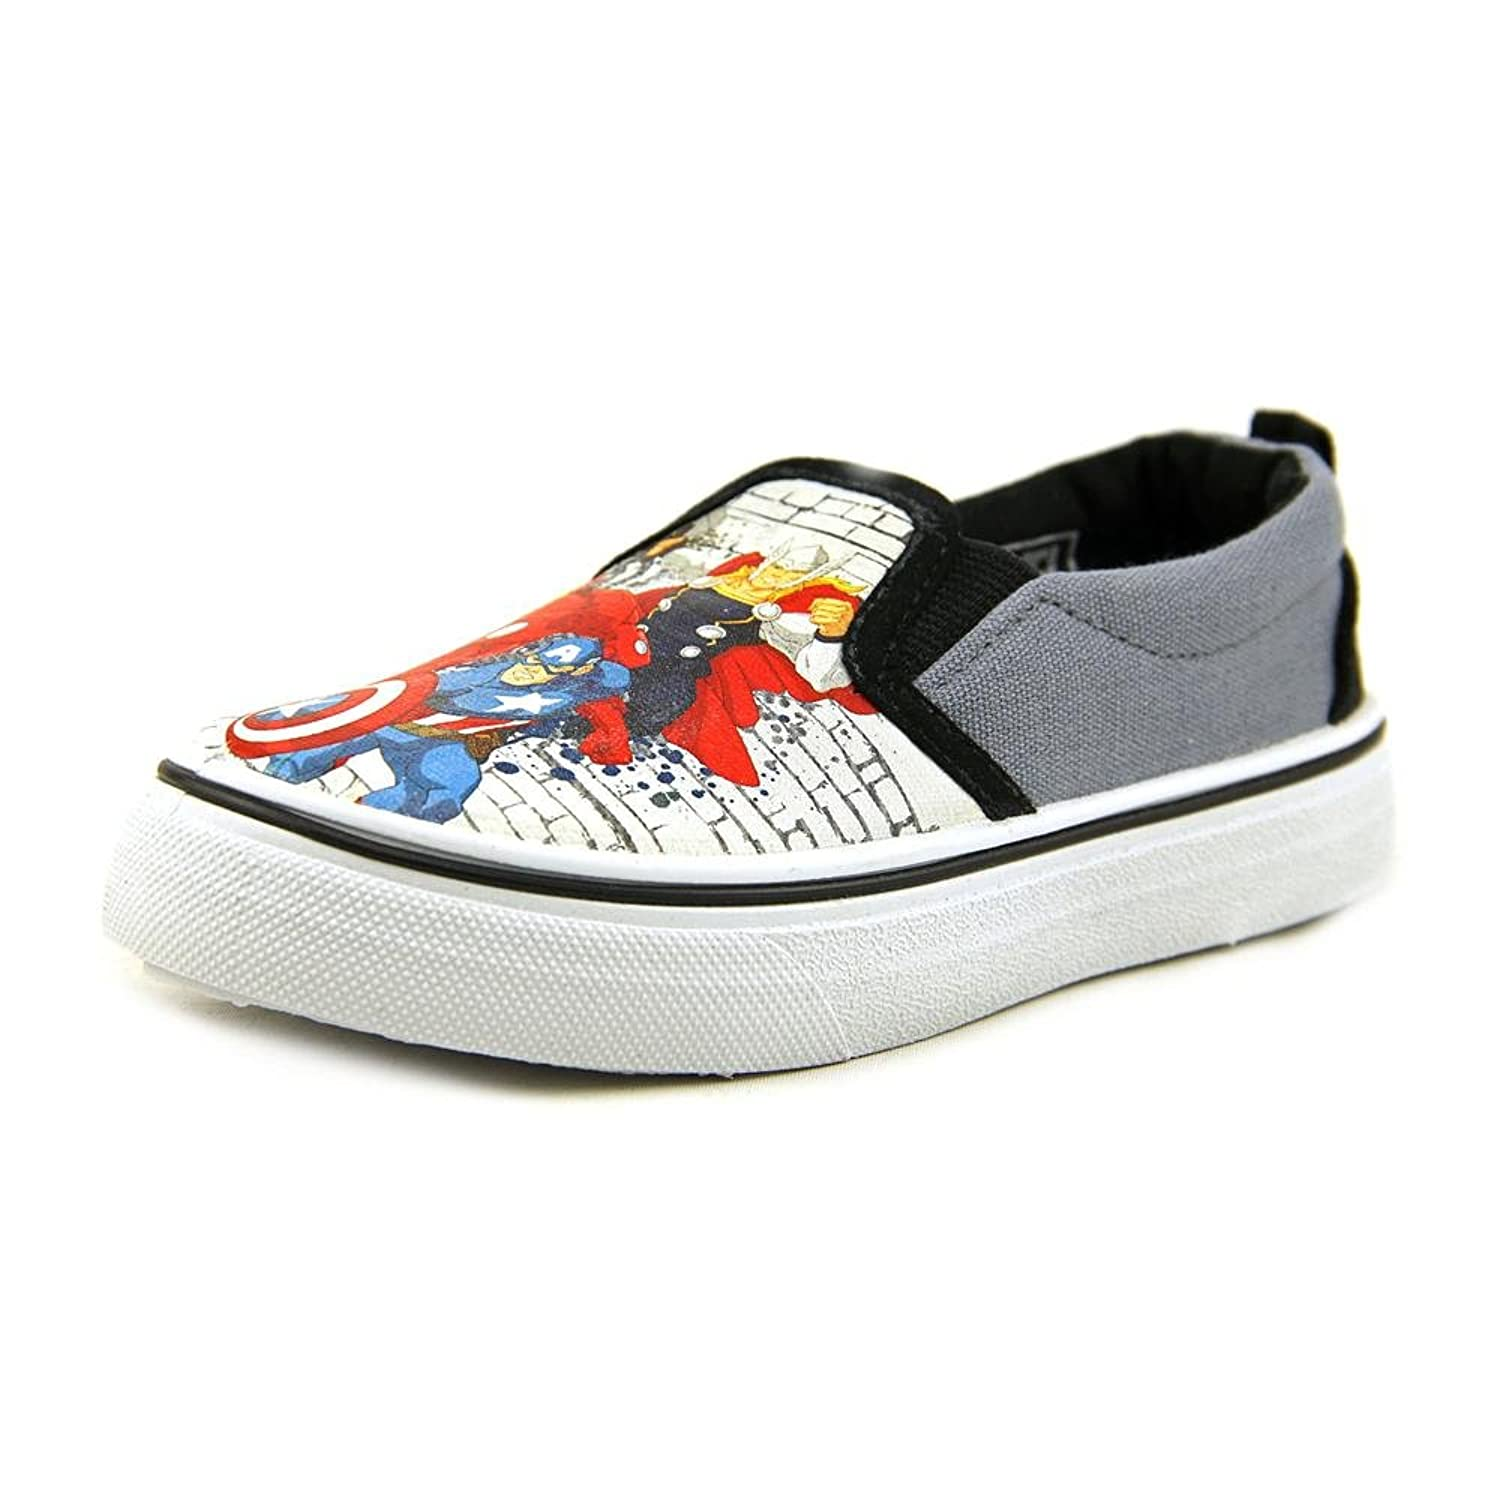 Marvel Heroes Avengers Canvas Textile Sneakers Shoes